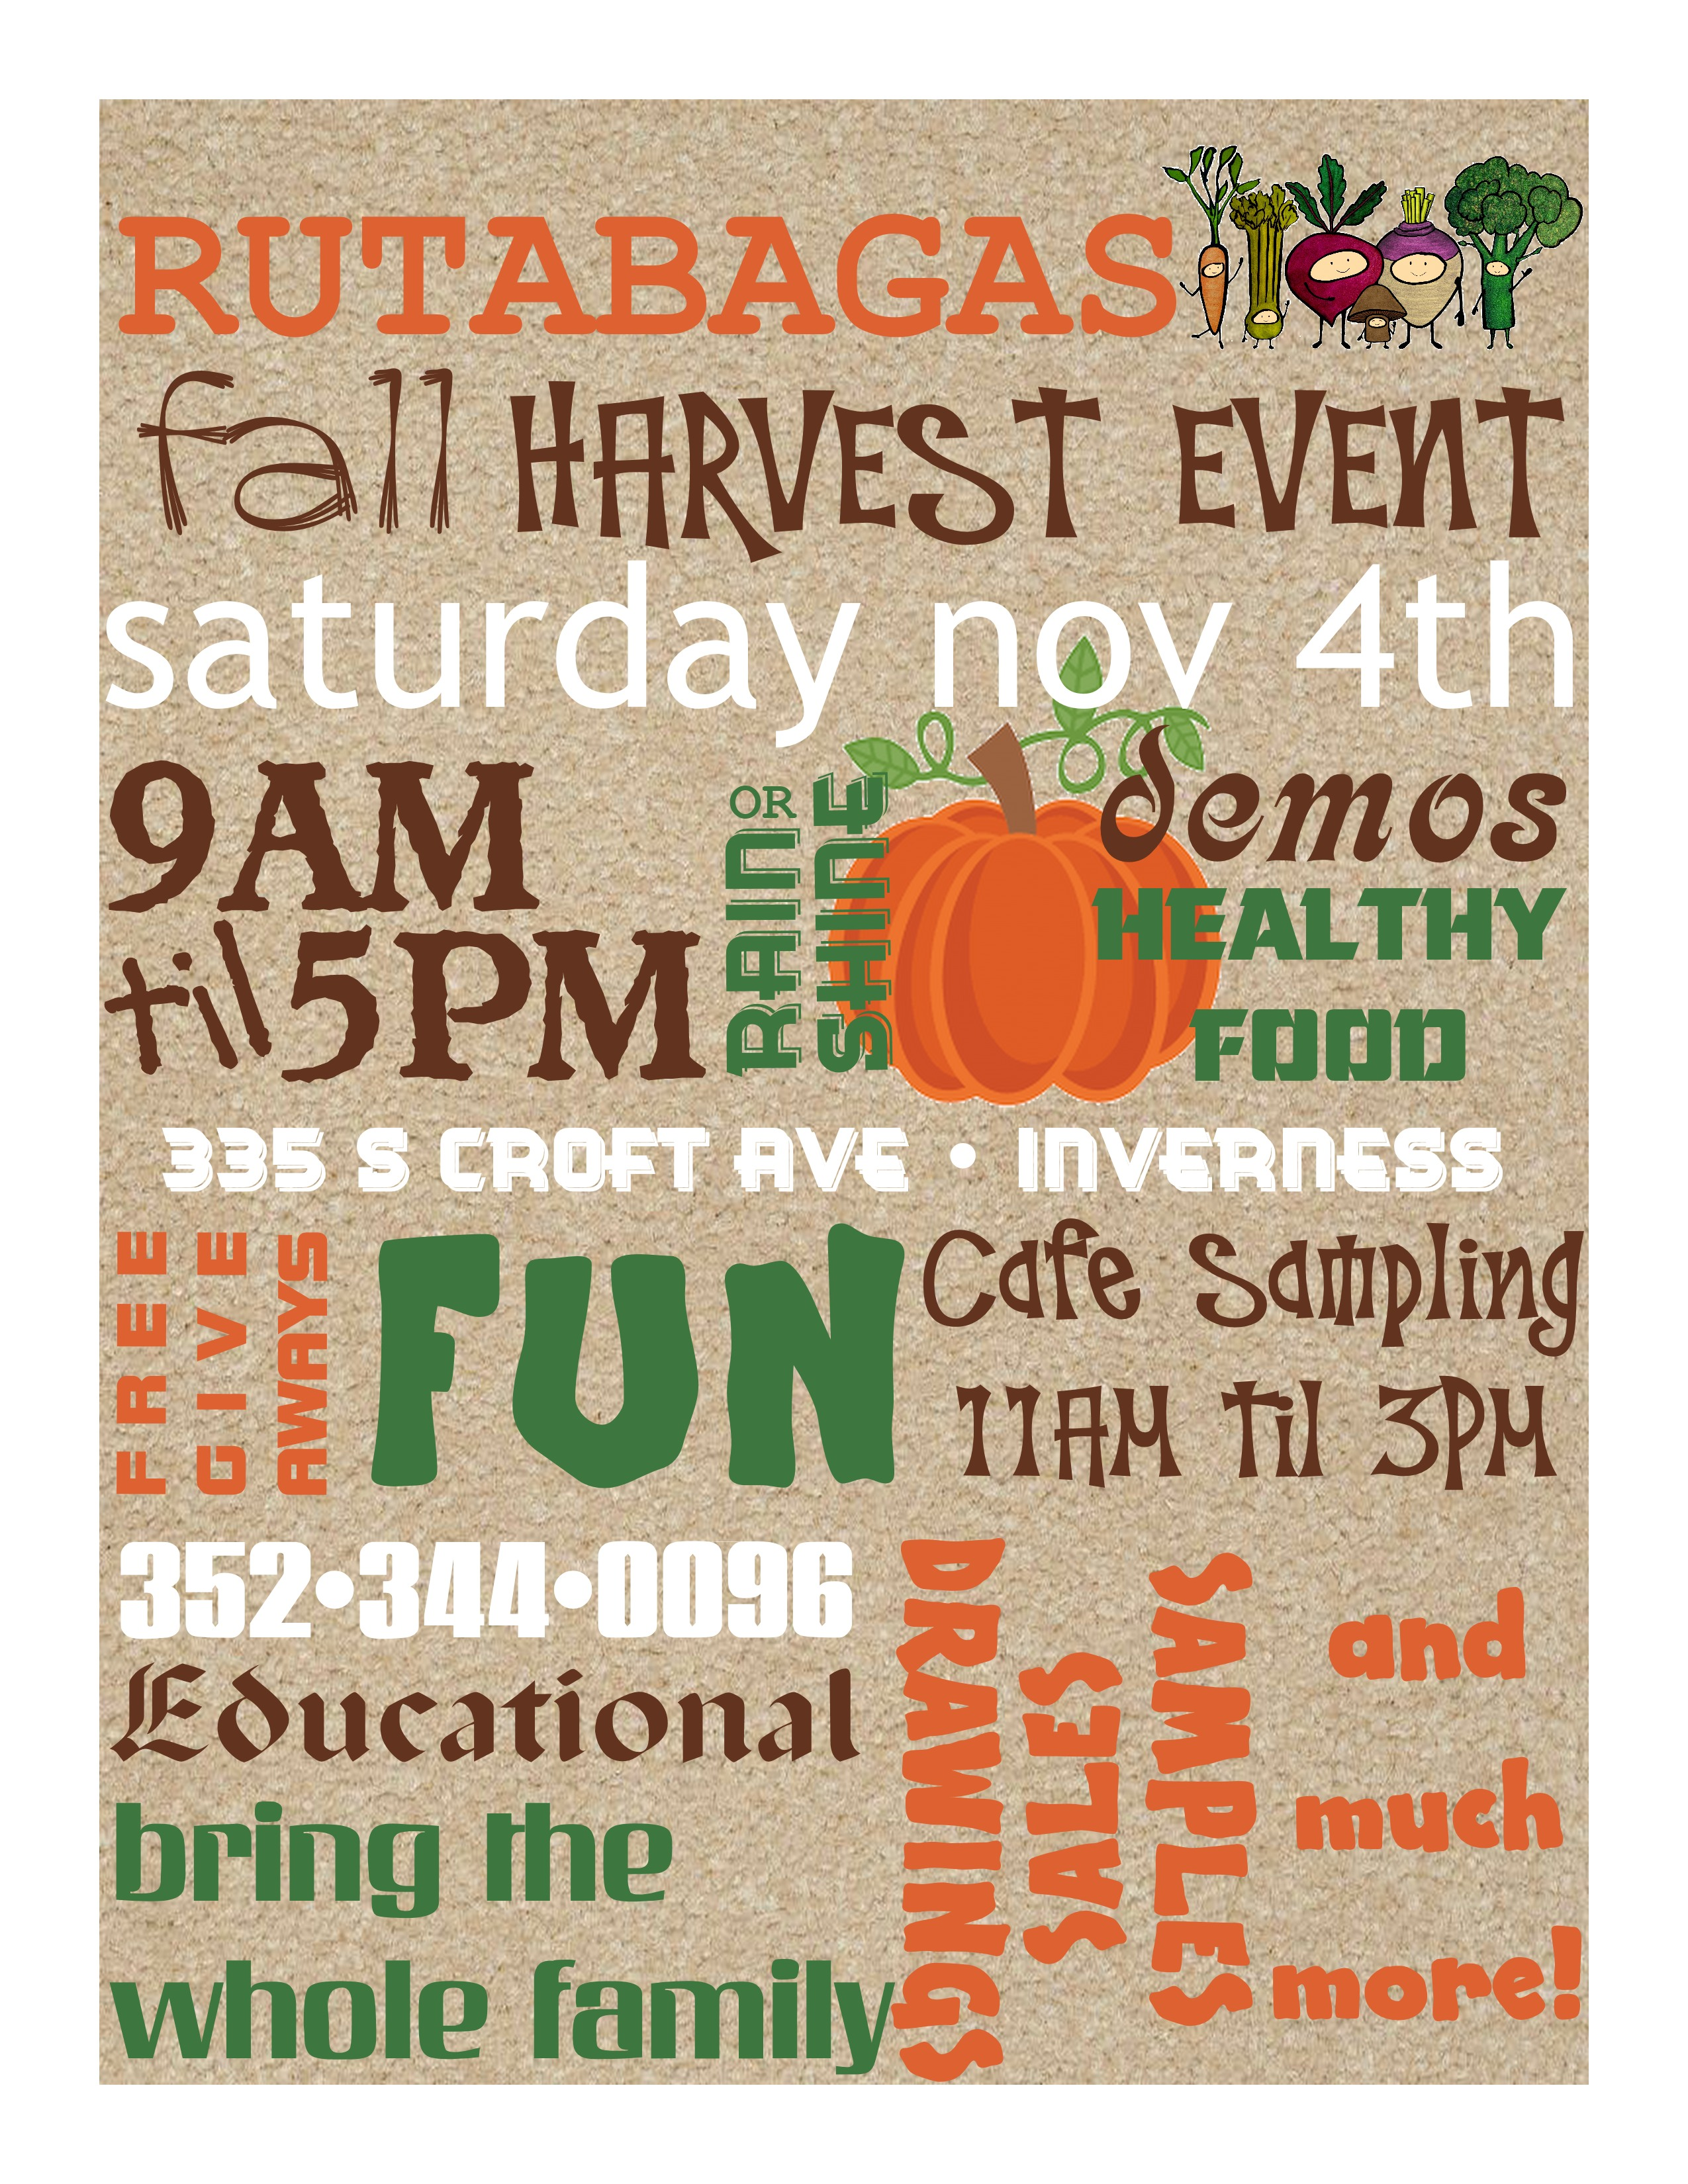 Rutabaga's Fall Harvest Event